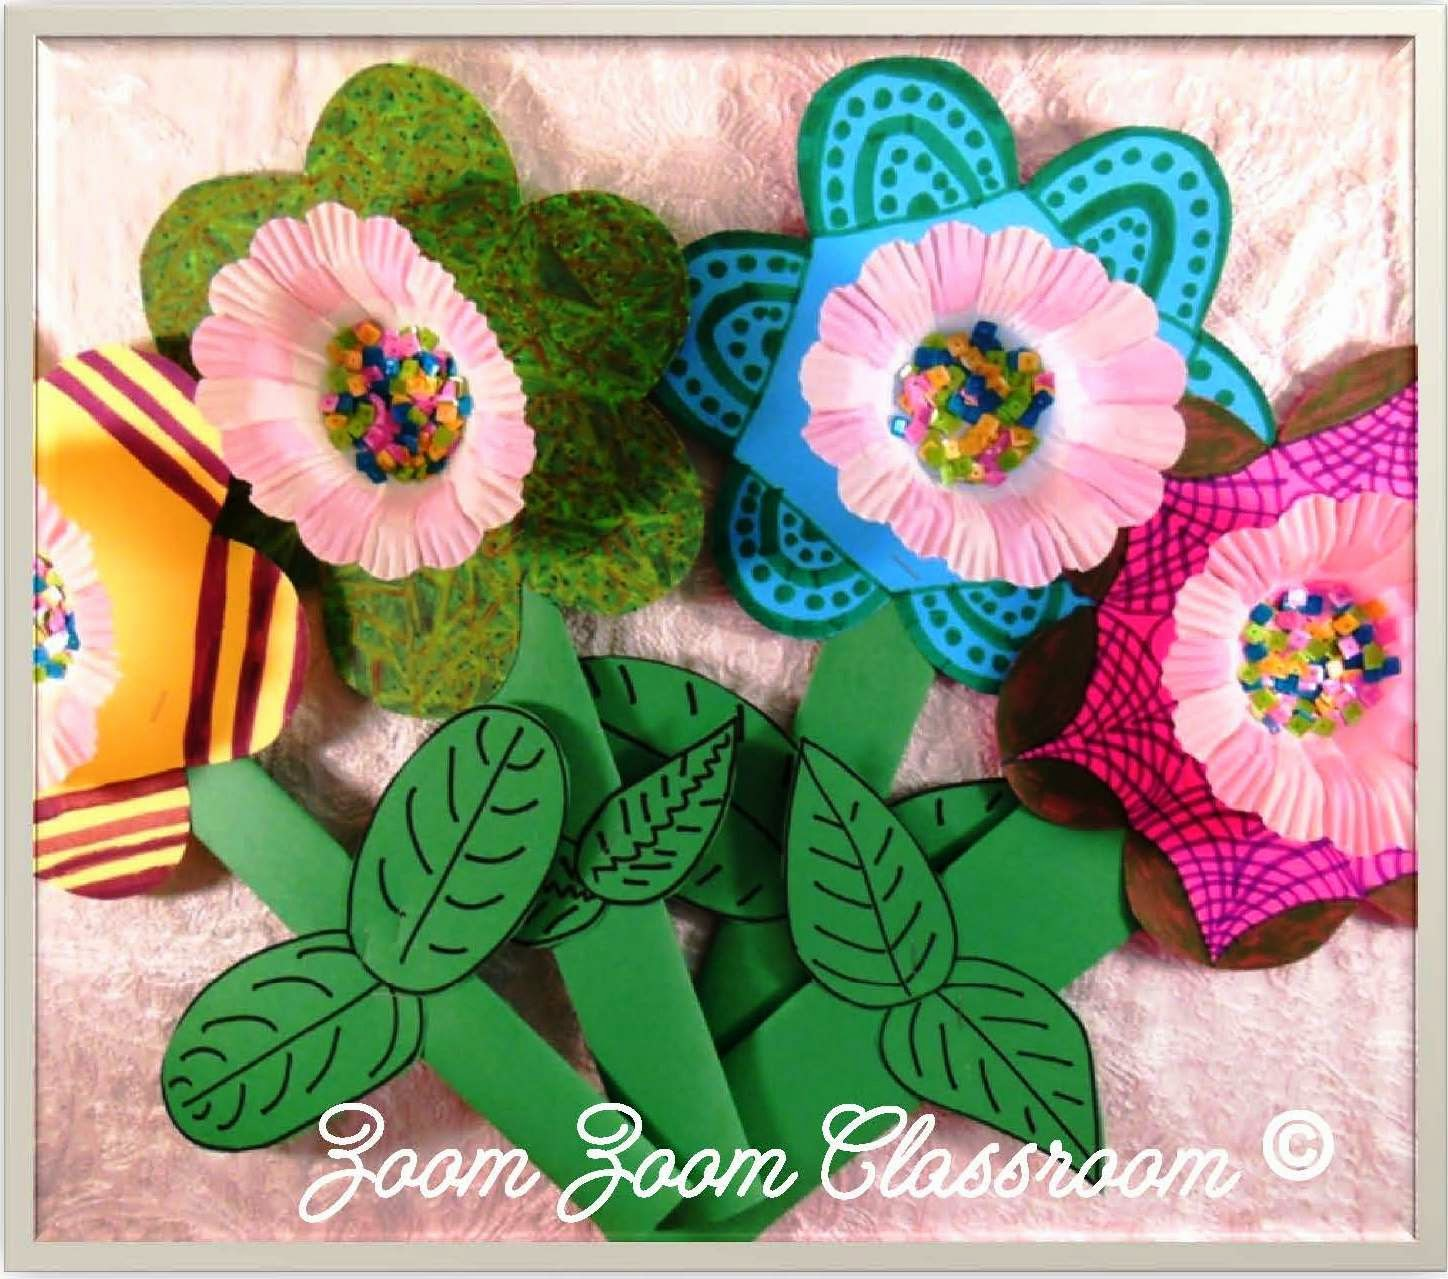 "This flower craft is easy to make and is sure to bring a smile to the face of any mother on Mother's Day!  Click the image of the black-line tropical flower to get the free pattern! Then trace it on poster board.  Allow the children to decorate the flowers with magic markers making each flower unique.  Glue or fasten cupcake liners inside the centers of the flowers.  The ""seeds"" are sequins that are glued inside the cupcake liners.  The stem and leaves are made from green construction paper."